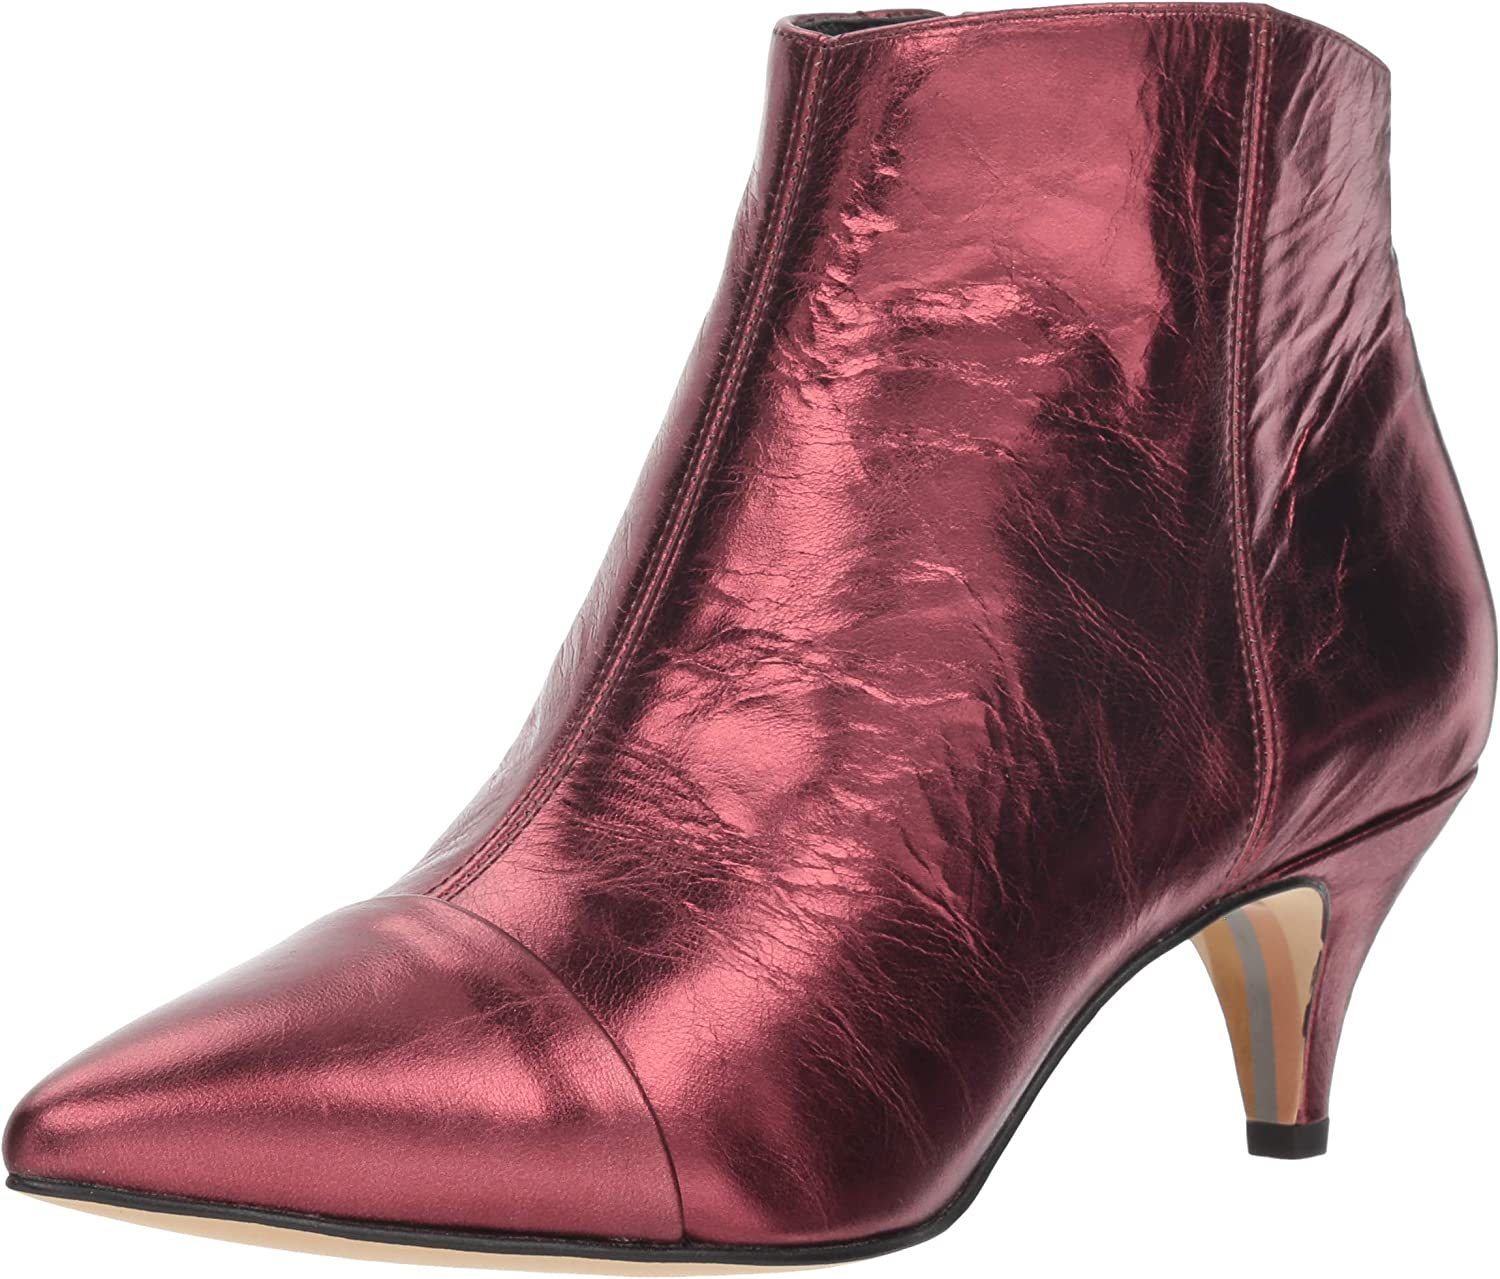 Sam Edelman Woherren Kinzey 2 Fashion Stiefel, Dark Cherry Metallic Leather, 7 M US